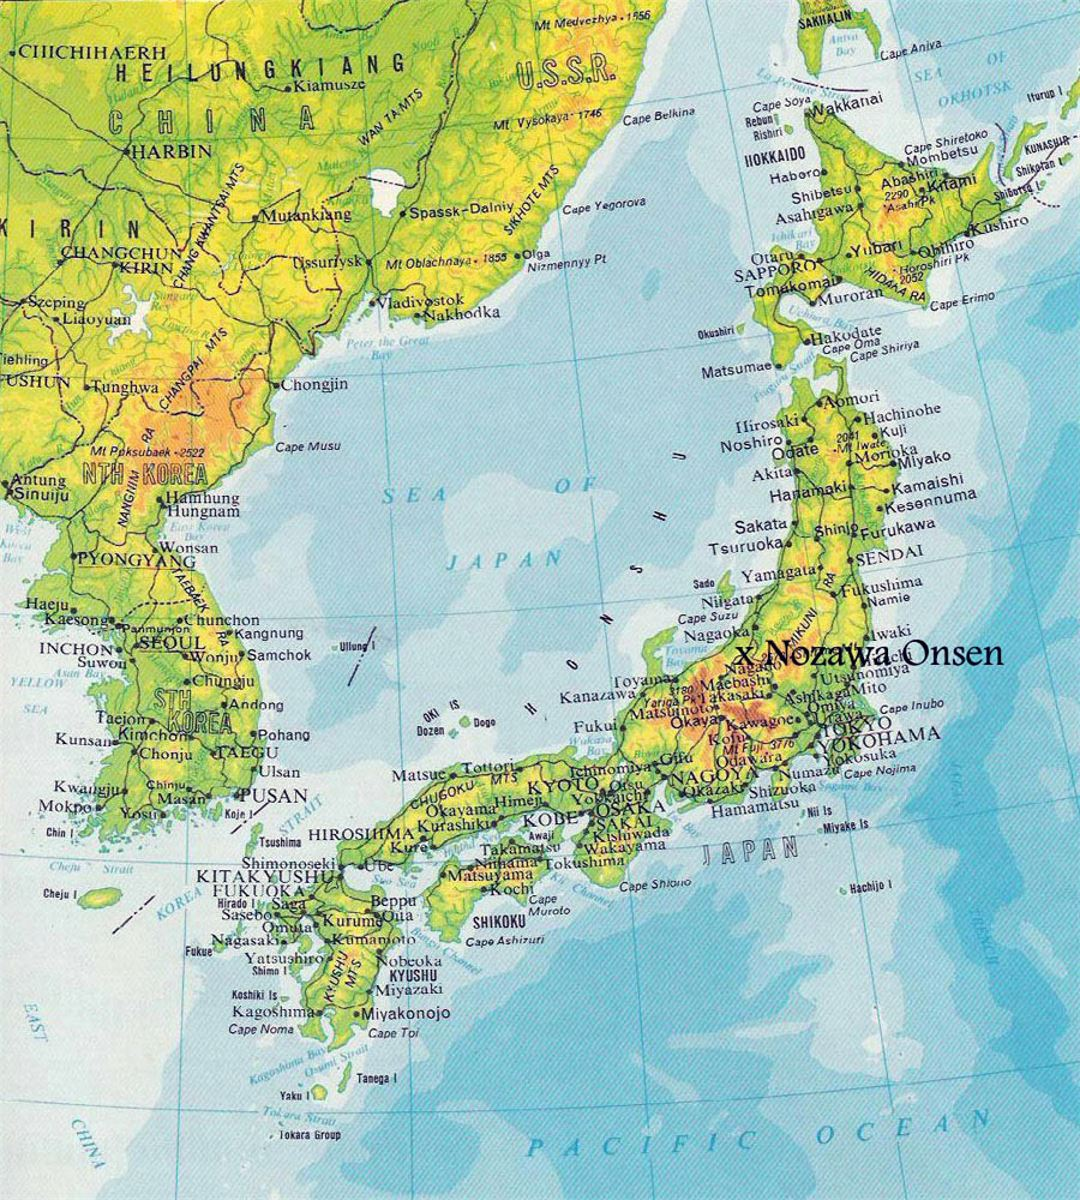 Elevation Map Of Japan With Roads And Cities